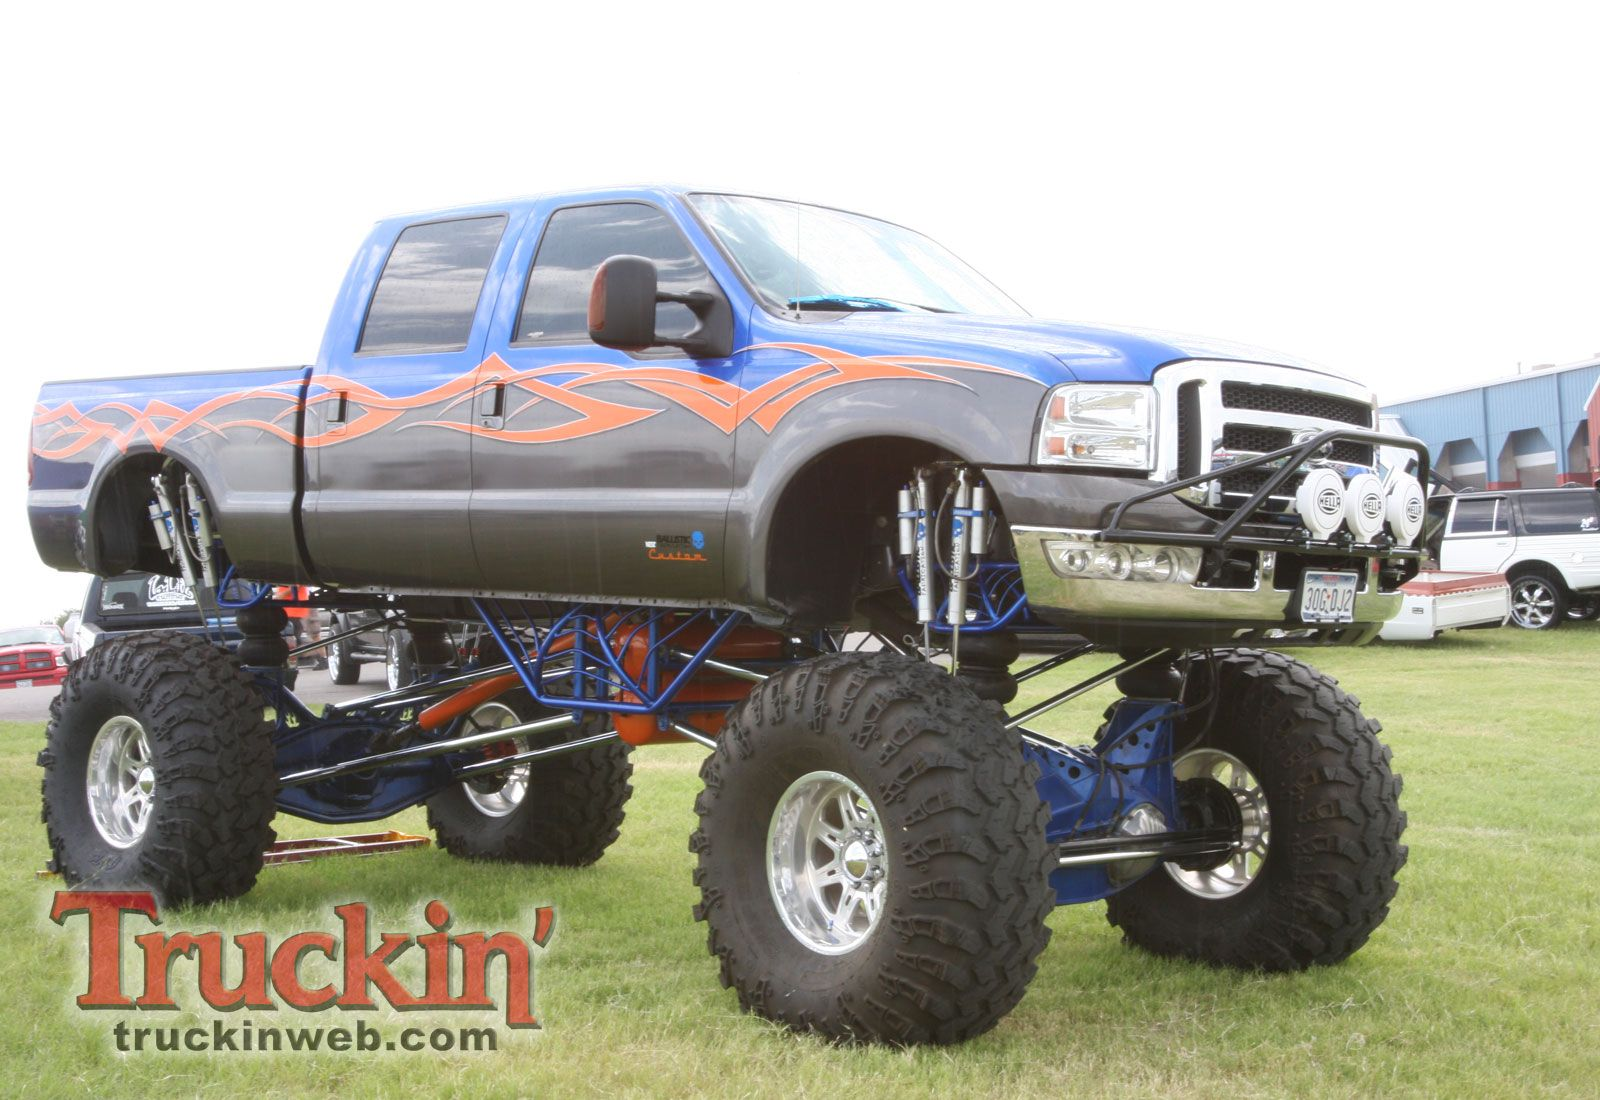 Lifted chevy show trucks 2103 texas heatwave truck show - Black F250 Ford Car Gallery Forgiato Dually And Others Pinterest F250 Ford Ford And Cars